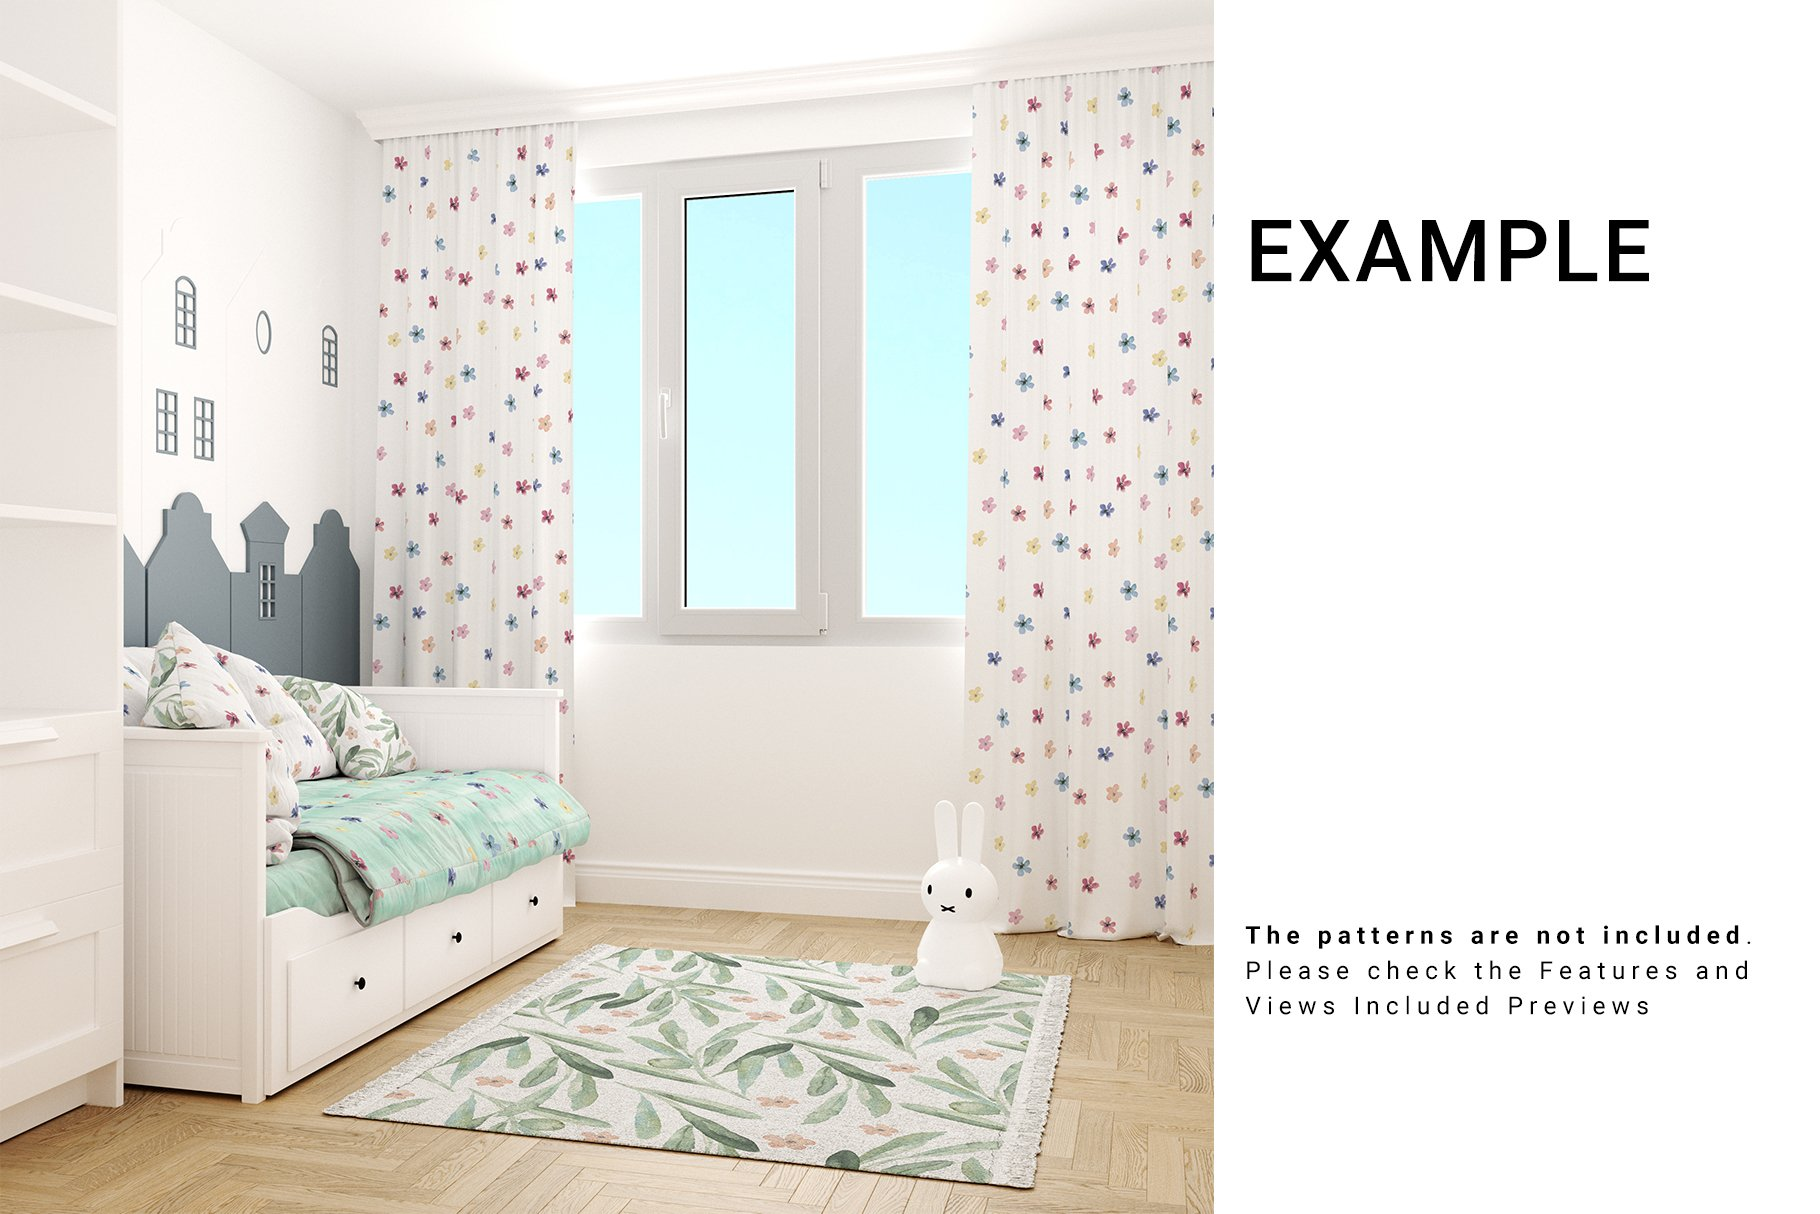 Toddlers Room Textile - Bedding, Curtains & Carpet Set example image 5